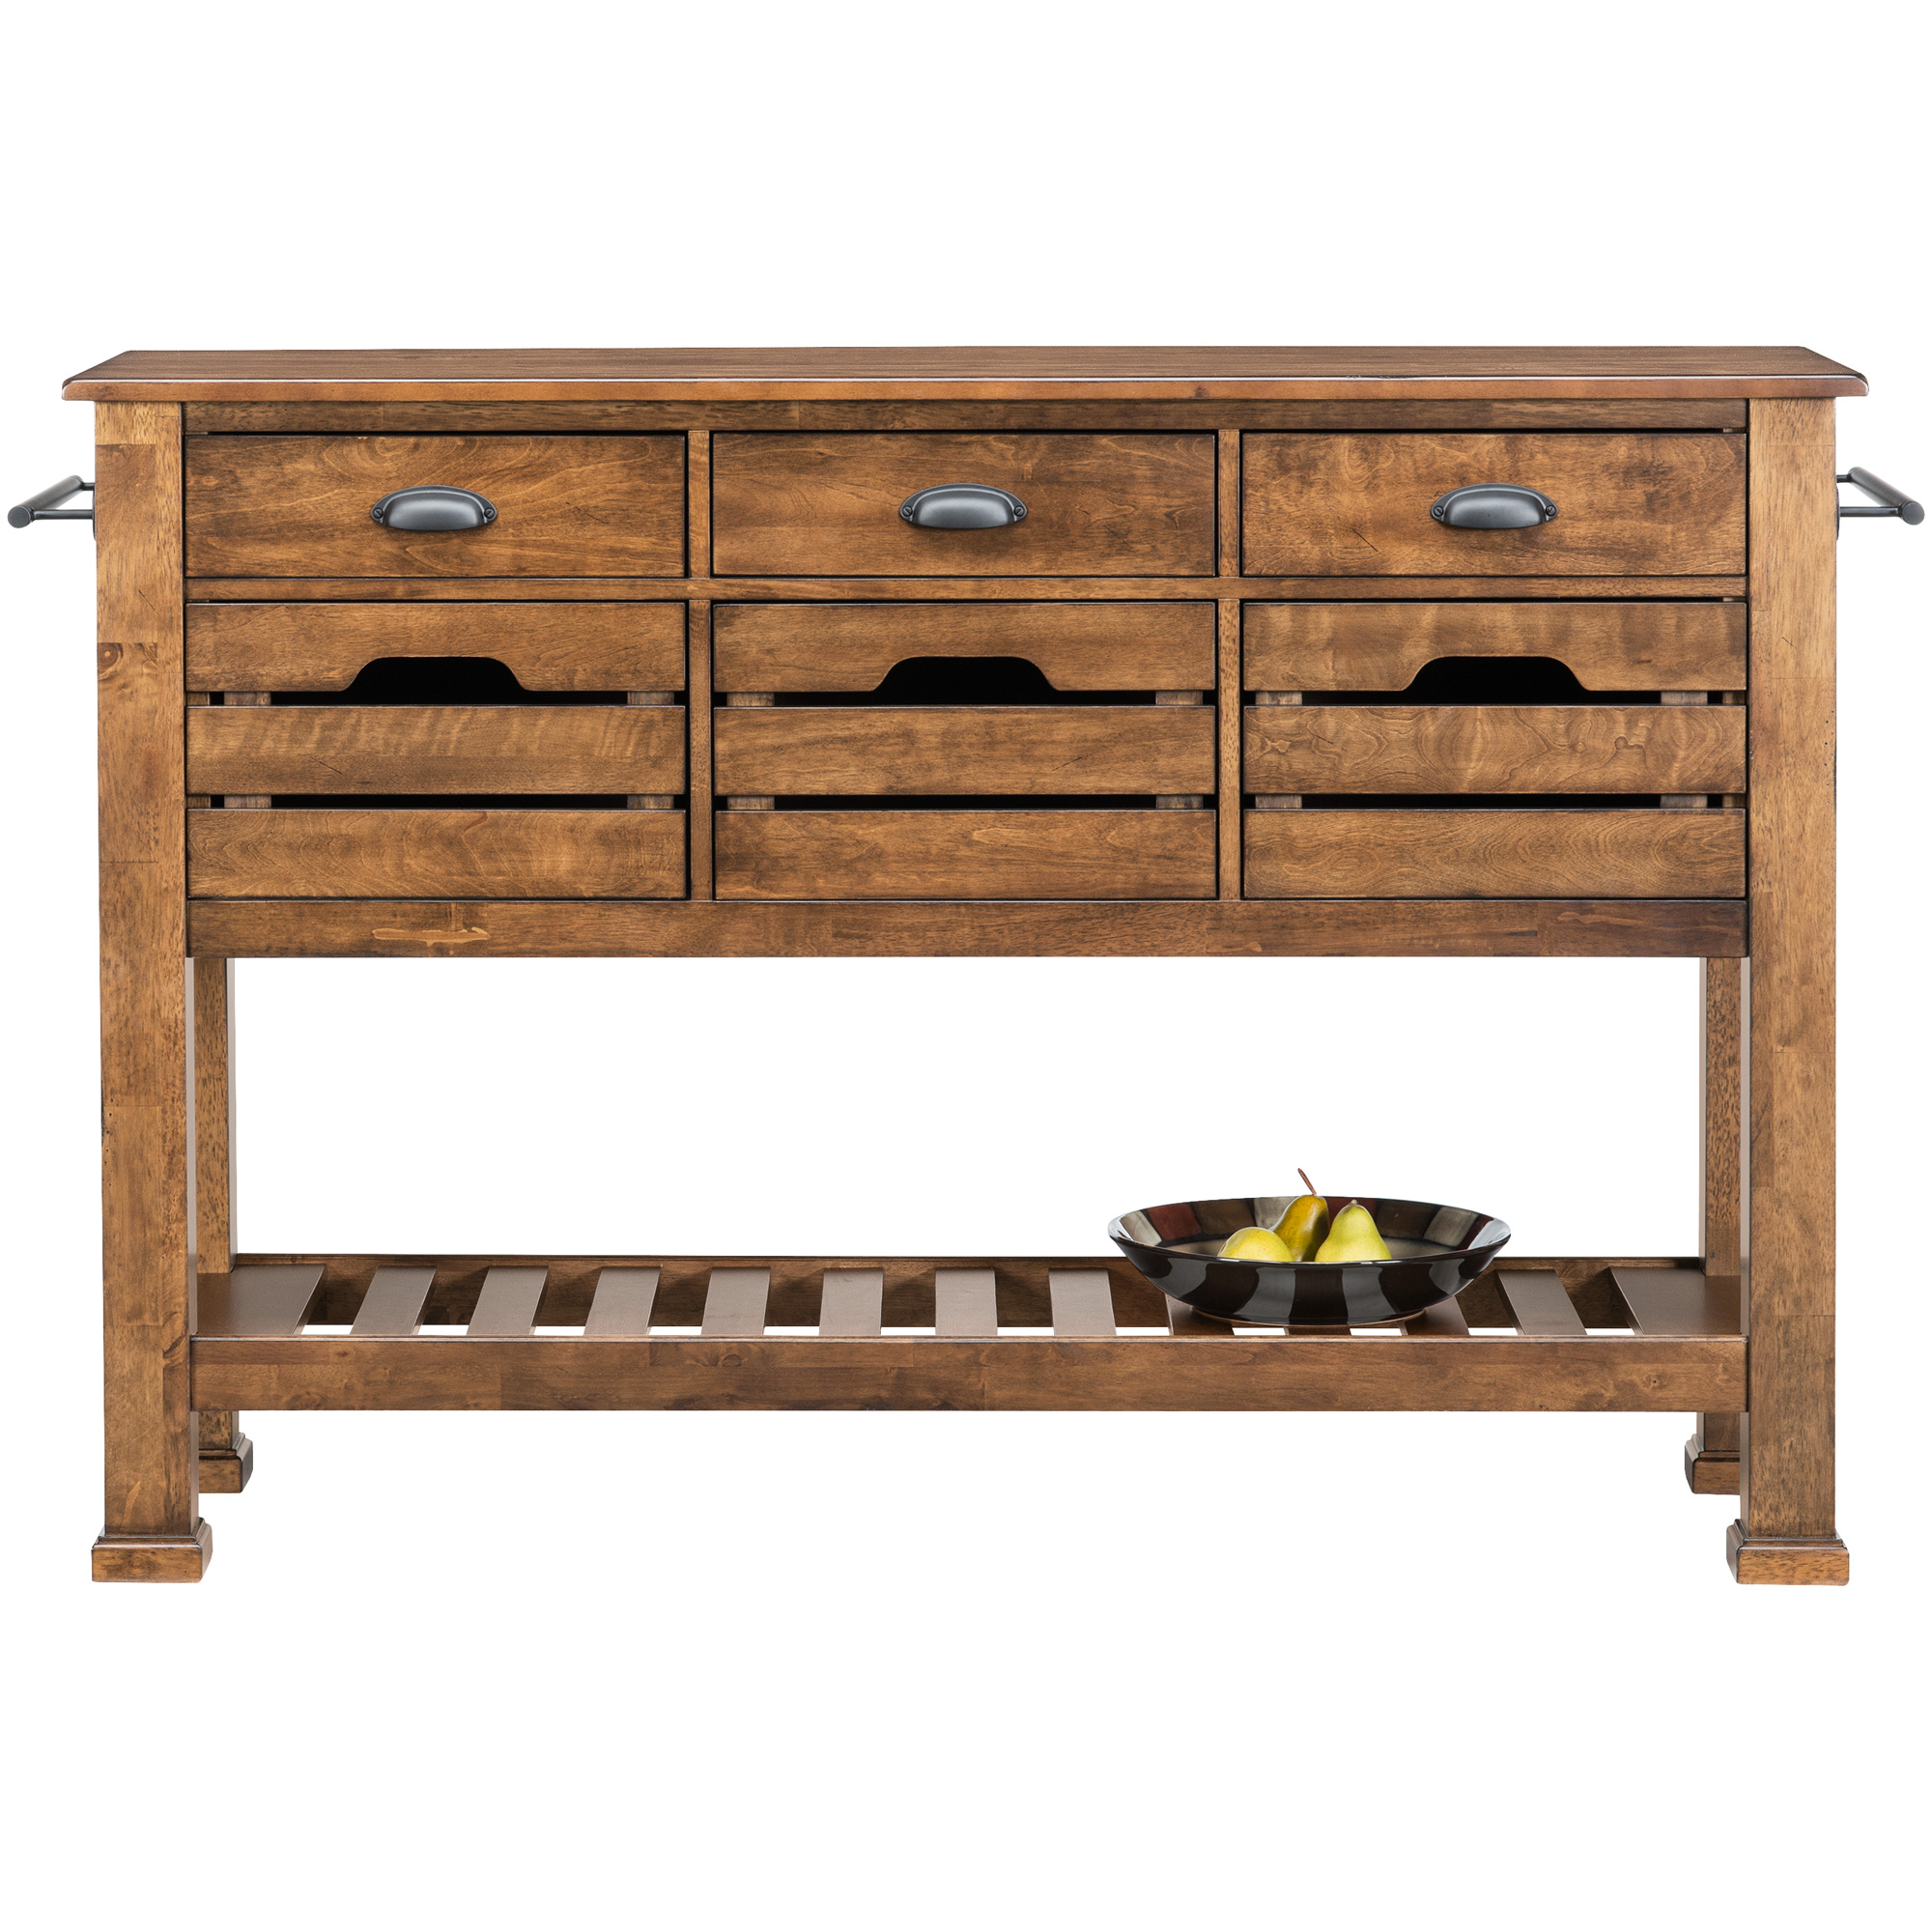 Intercon | District Copper SideBoard